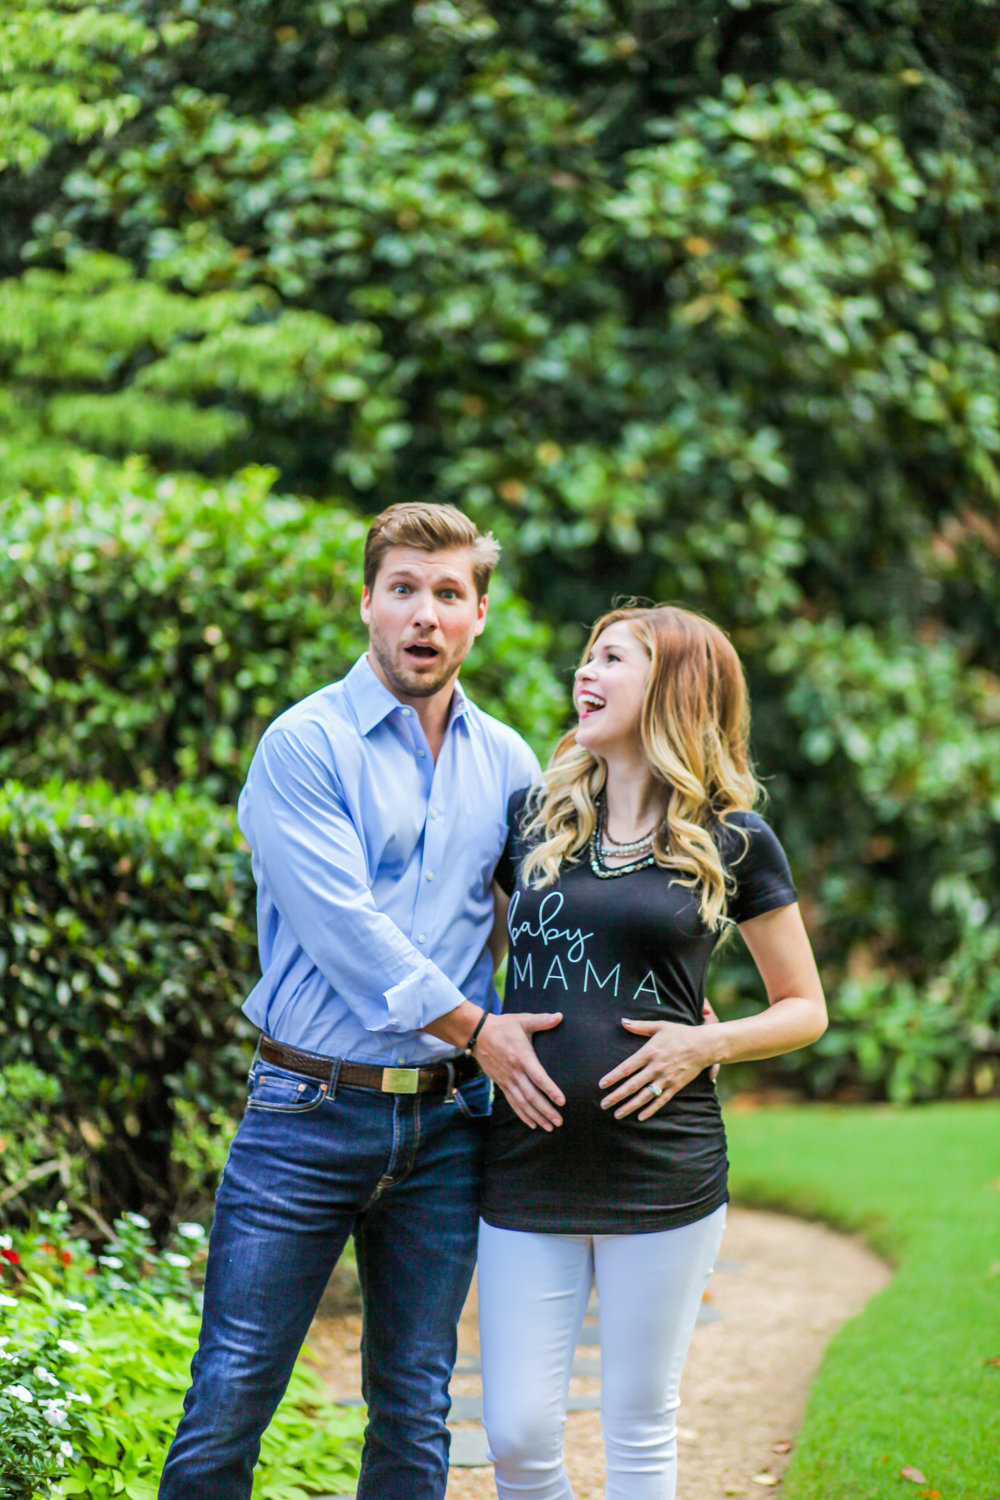 sandy springs atlanta pregnancy annoucnement photography 6.jpg